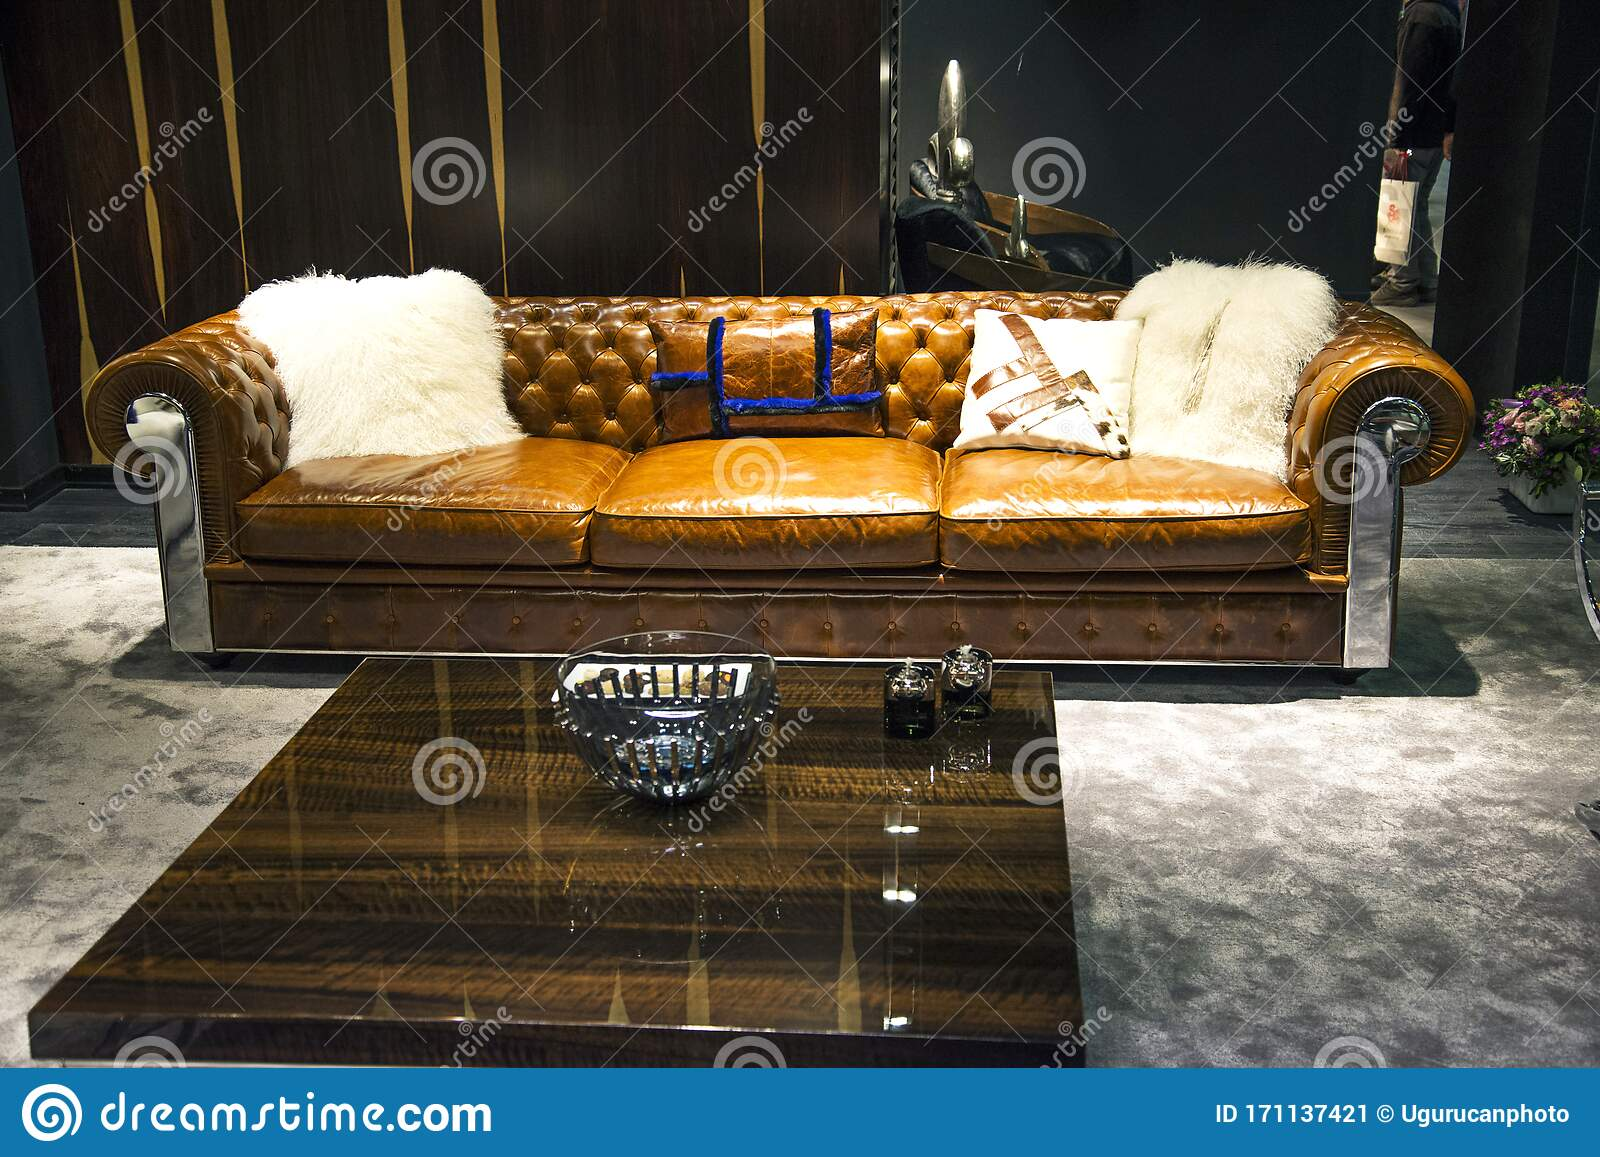 Leather Sofa In Living Room And Modern Coffee Table In Front Of It Editorial Photo Image Of Bedroom Chandeliers 171137421